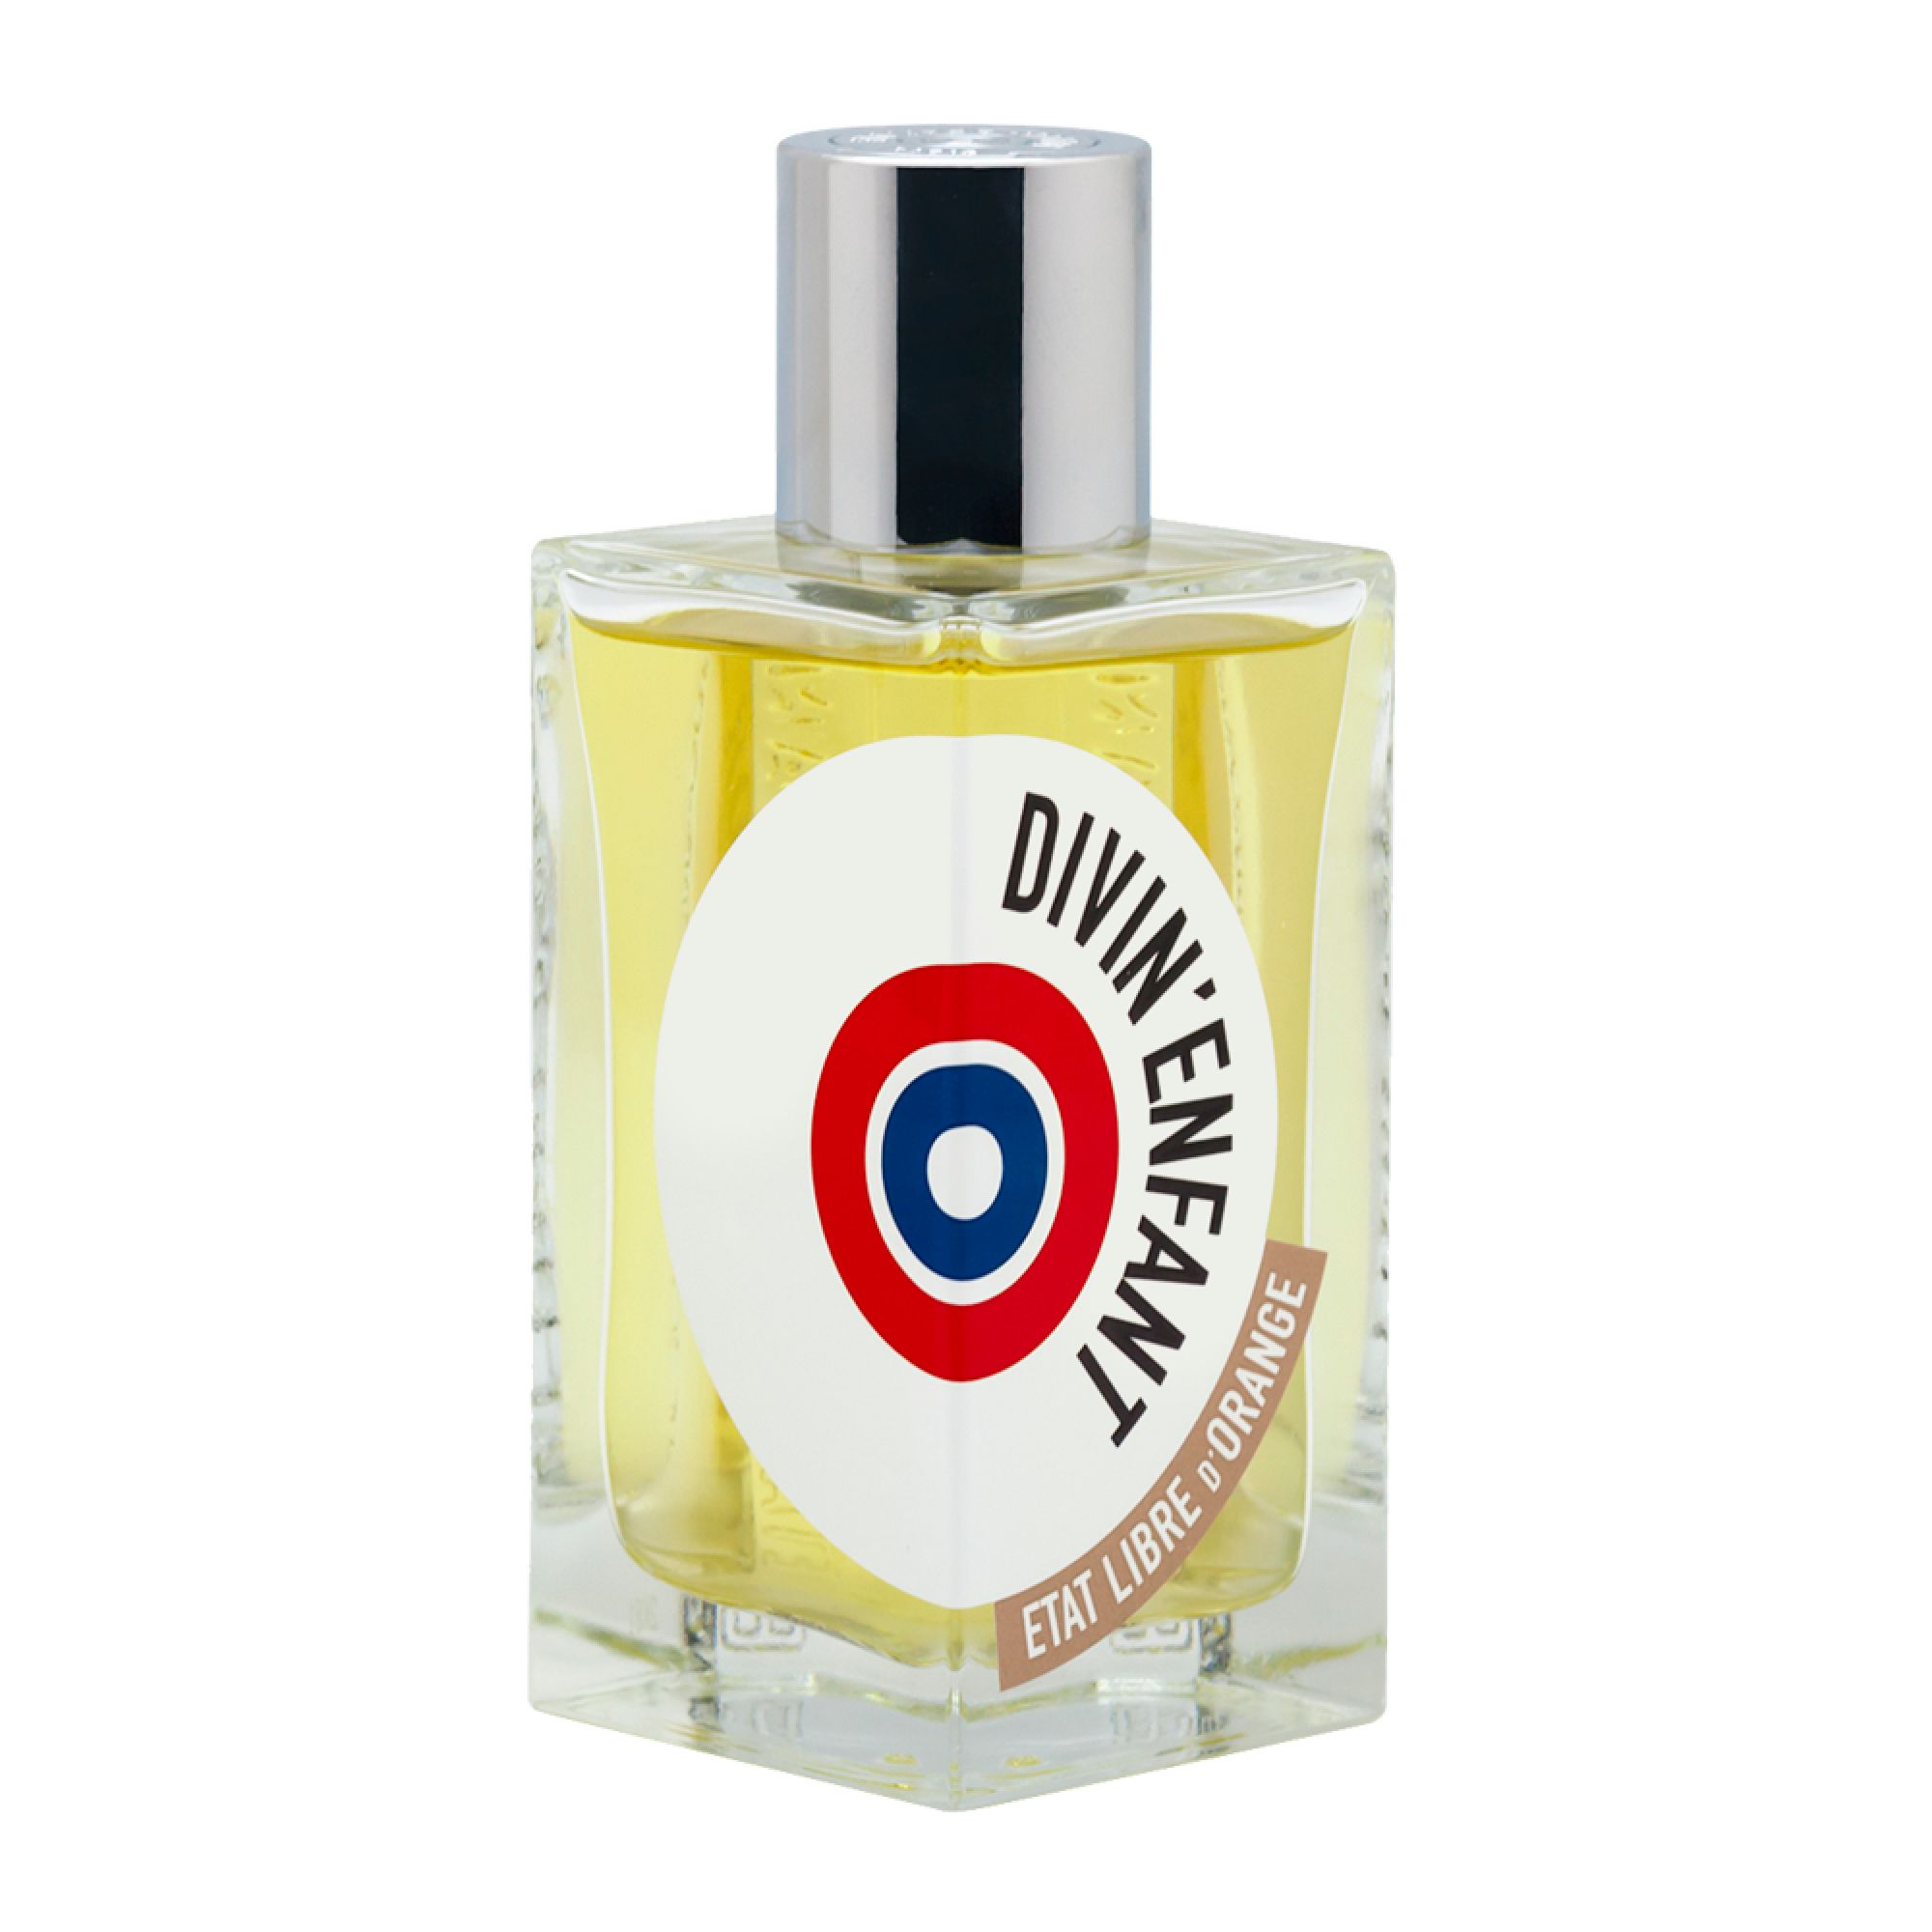 Etat Libre d'Orange Etat Libre d'Orange Divin`Enfant Eau de Parfum 50ml